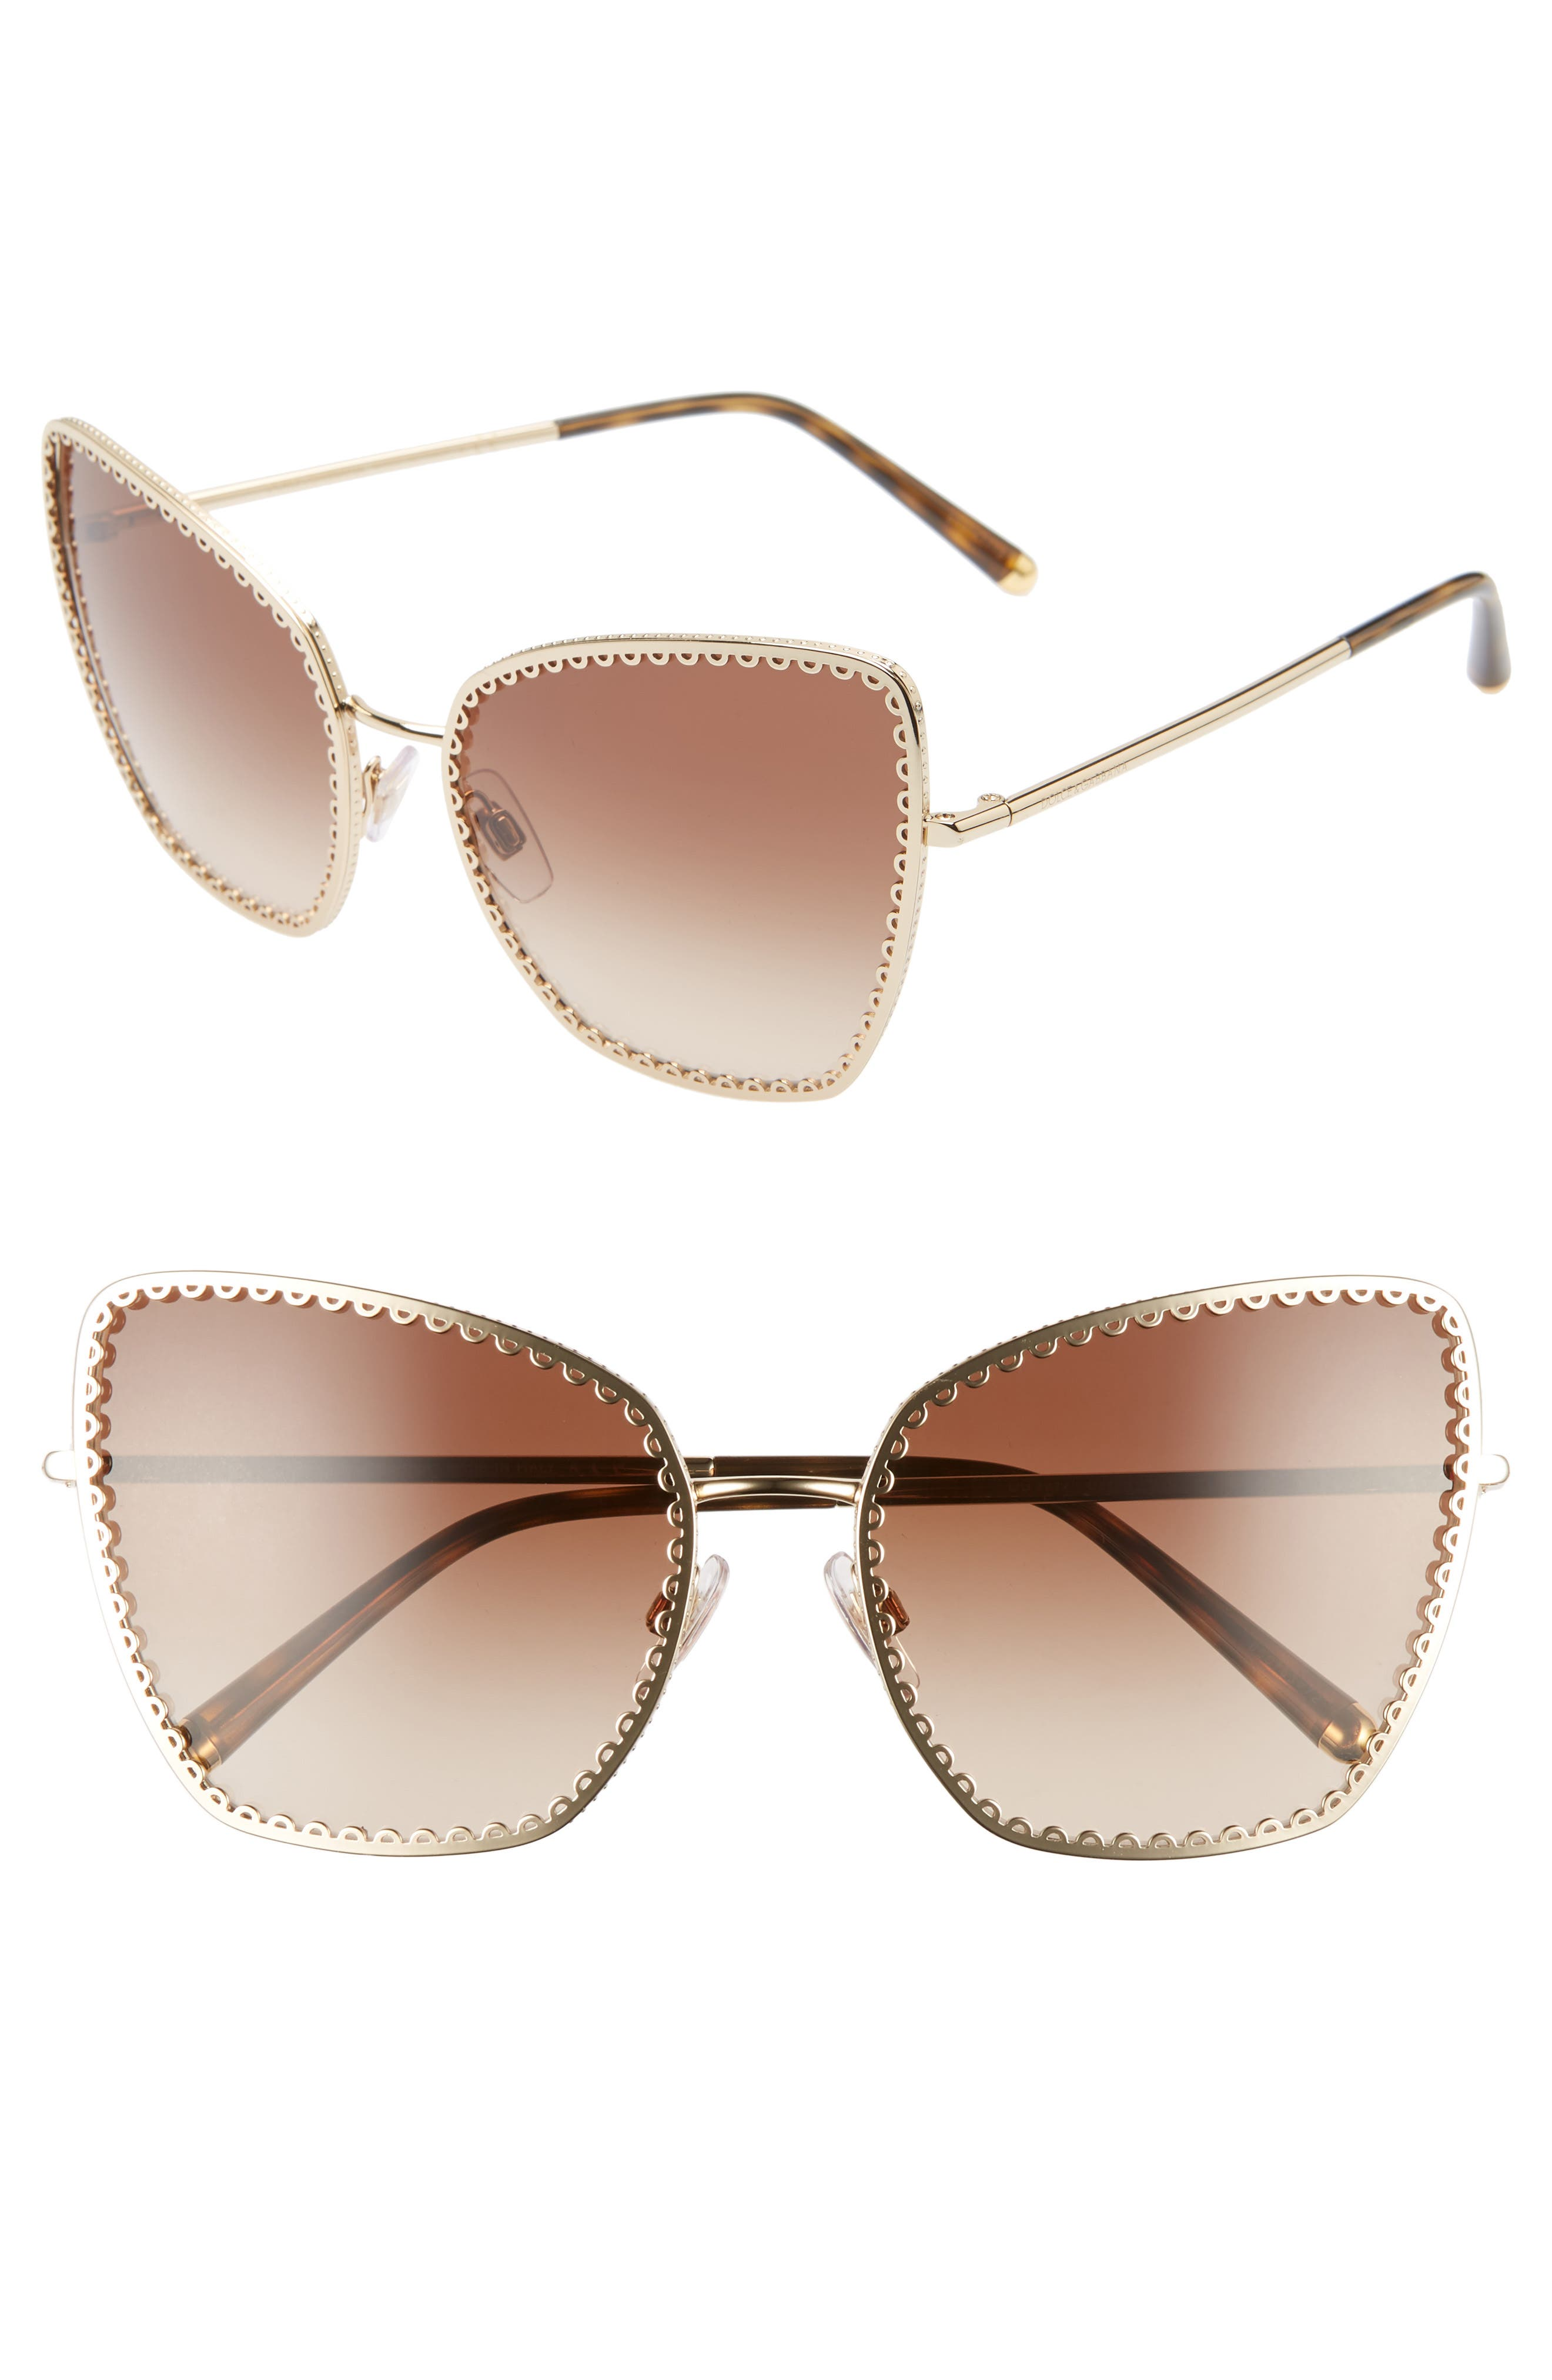 Dolce & gabbana Sacred Heart 61Mm Gradient Cat Eye Sunglasses - Gold Gradient